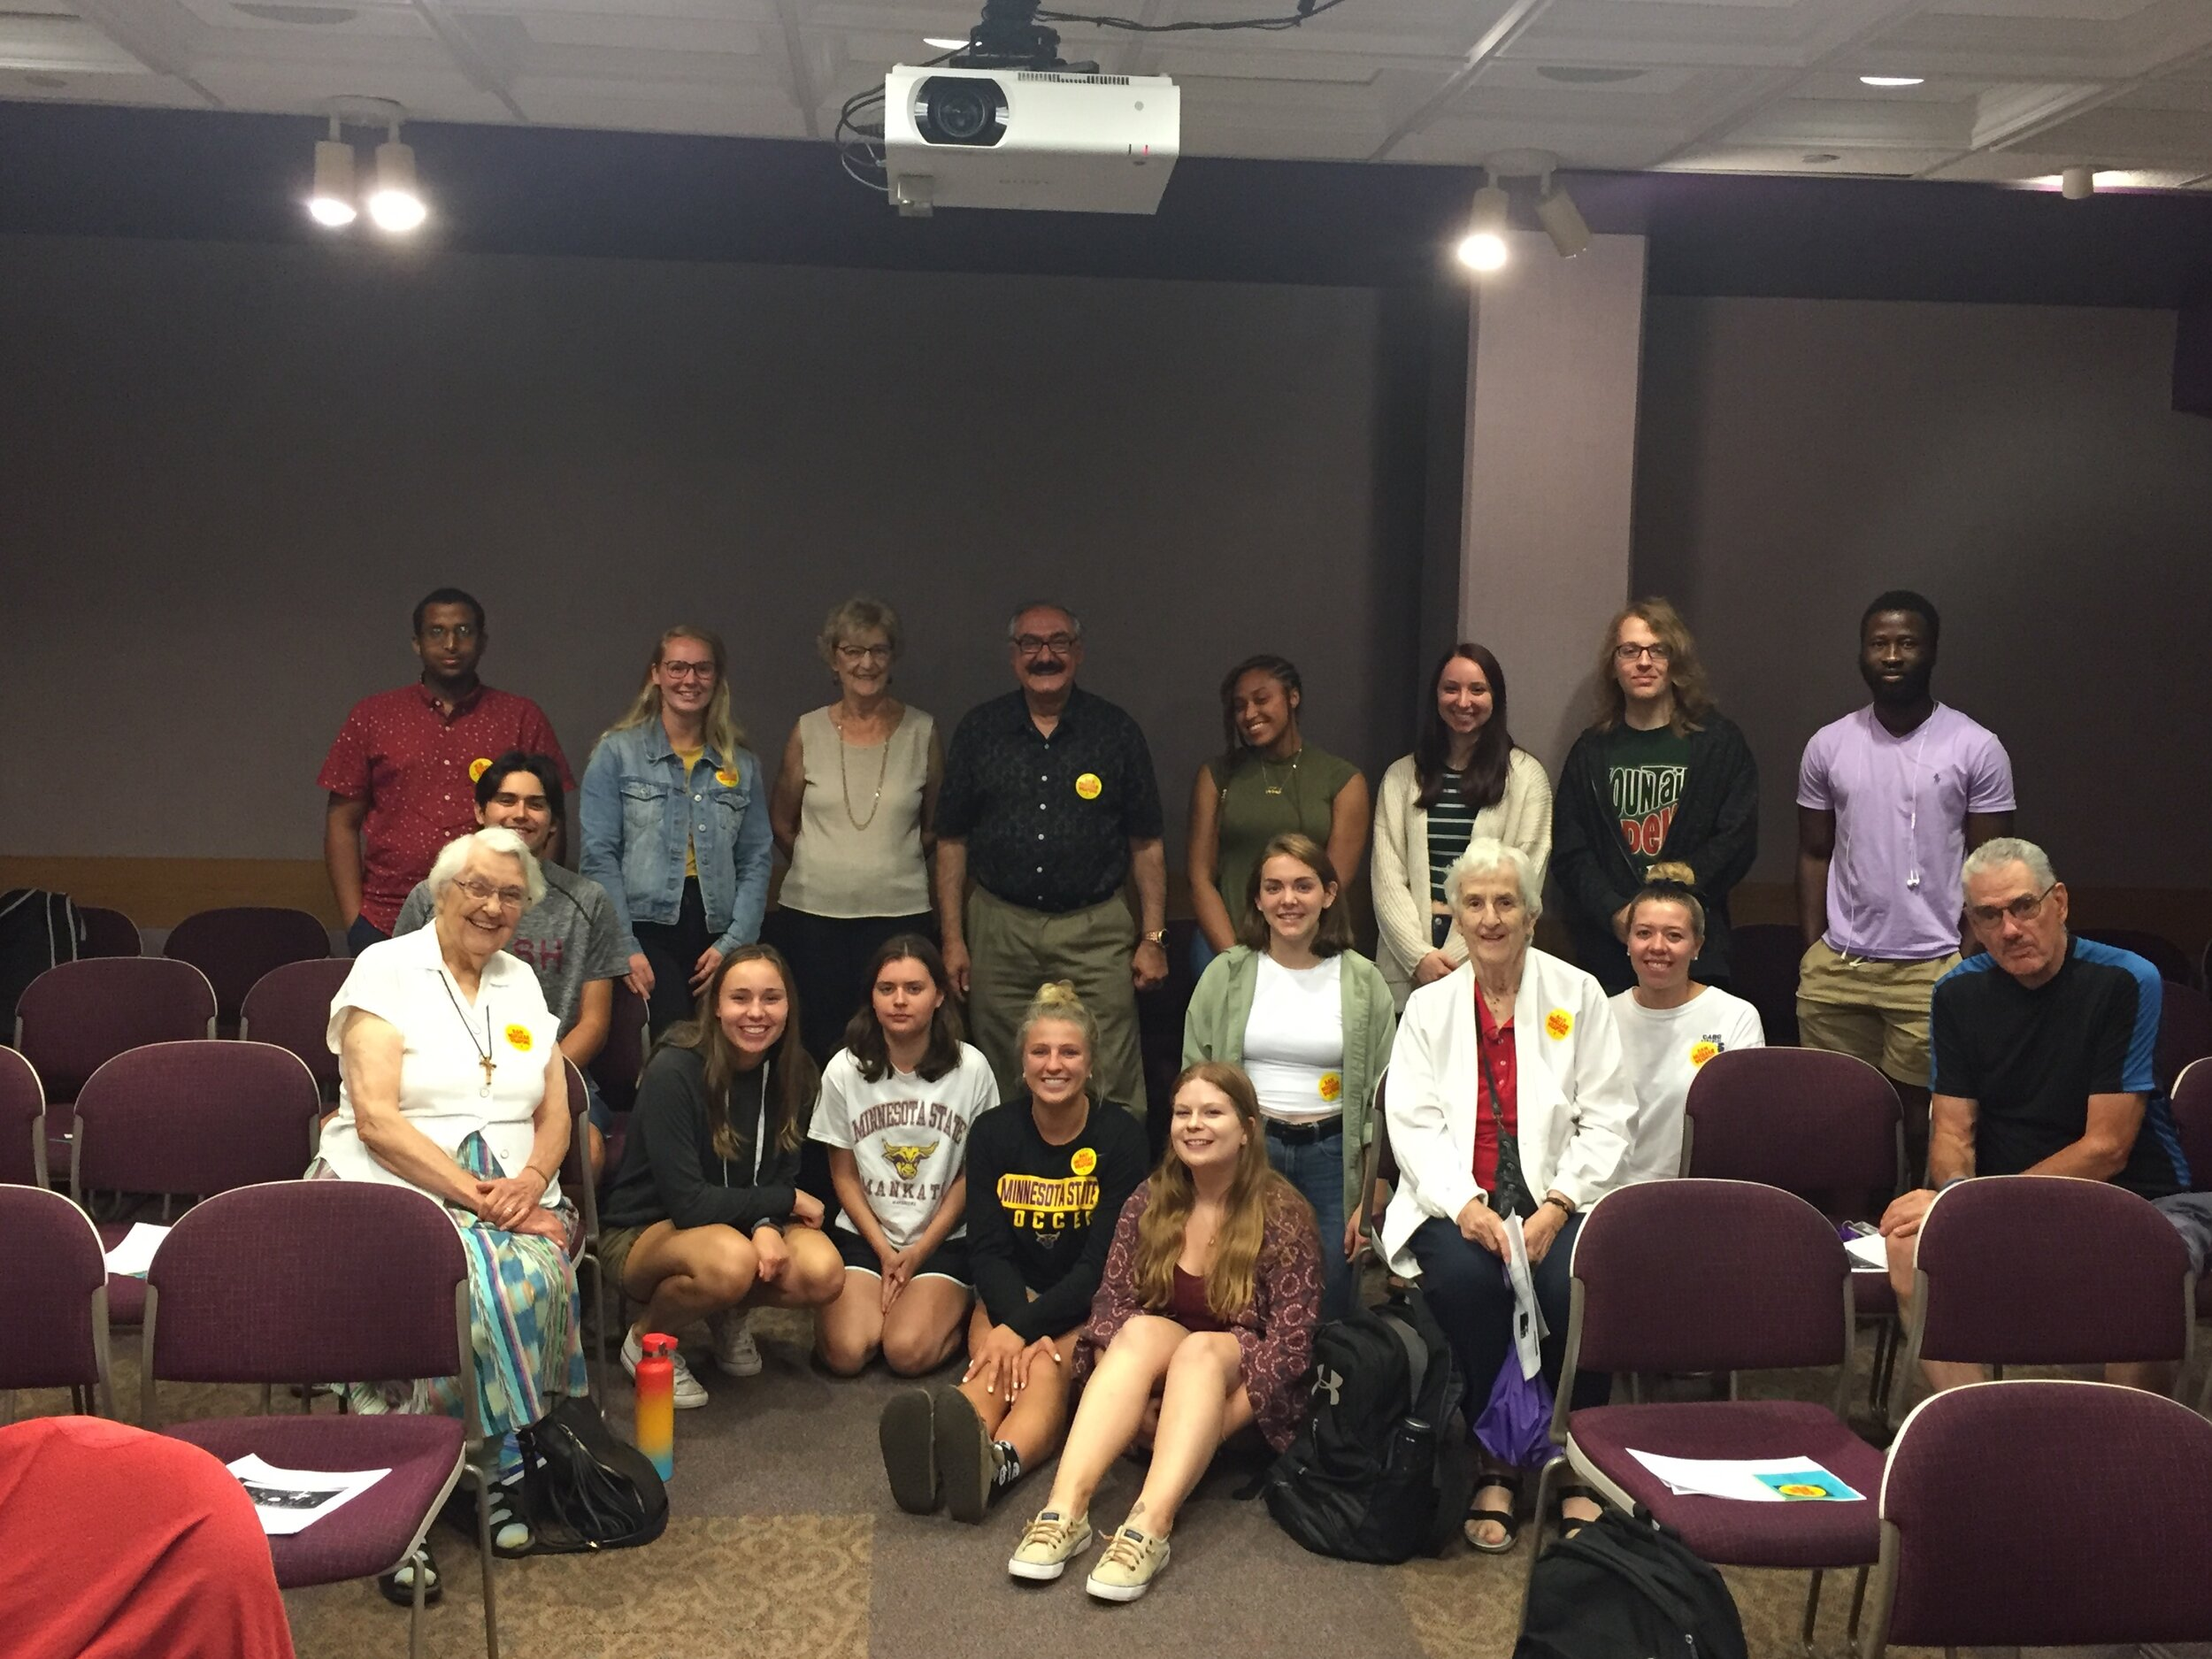 Sami Rasouli and Marie Braun plus students at Mankato State 9/25/19